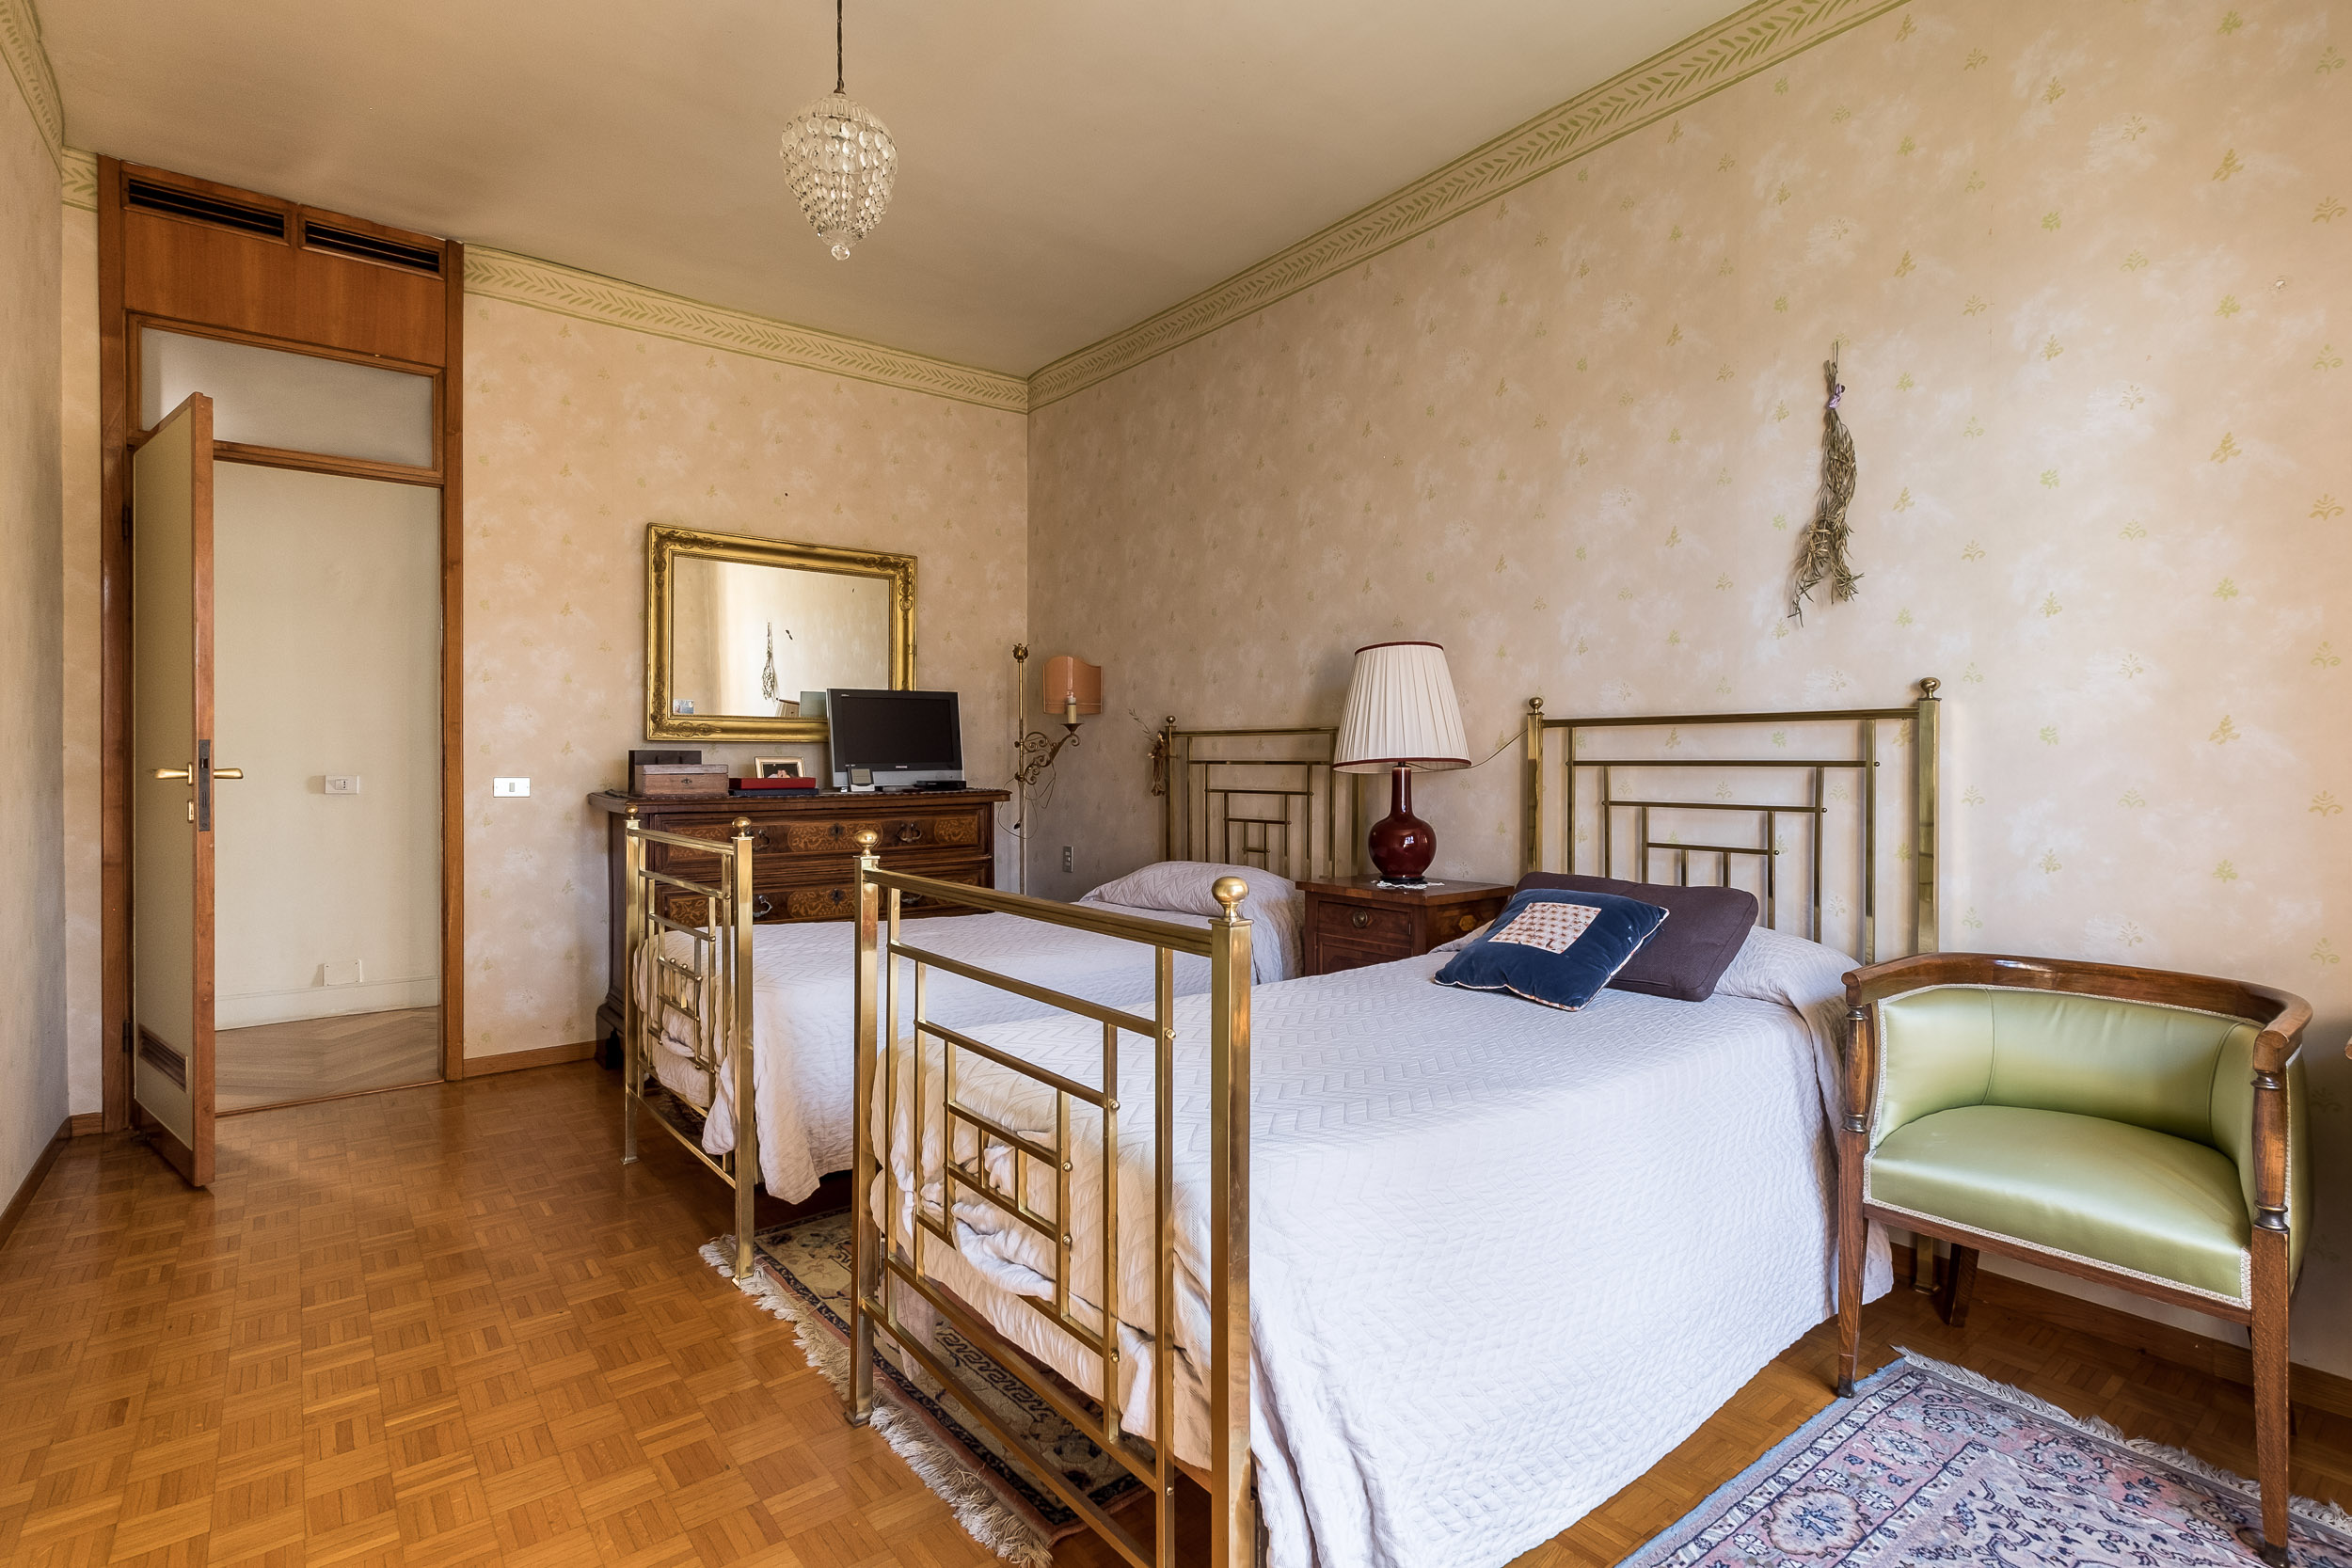 Via Siepelunga,Bologna Sud,10 Rooms Rooms,Residenziale,1220